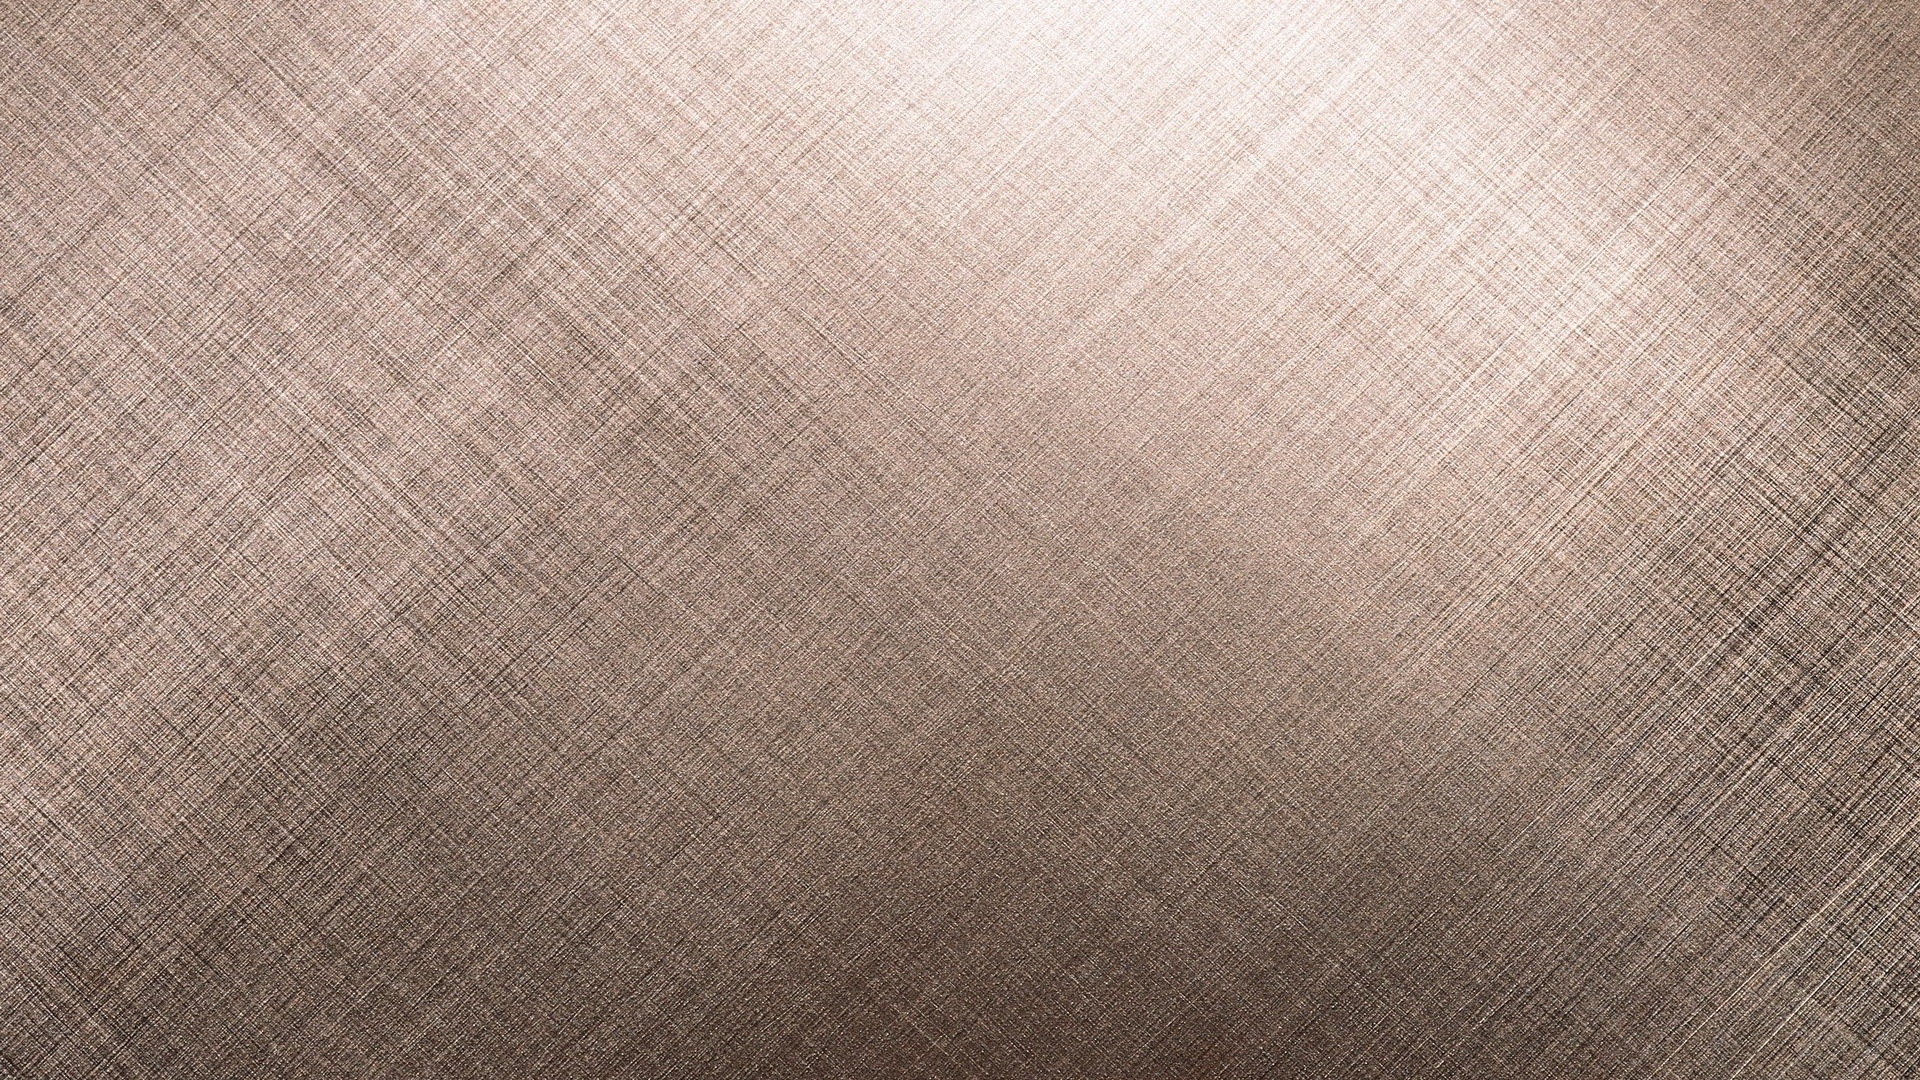 Home Wallpaper Texture 1920x1080 grunge fabric texture desktop pc and mac wallpaper